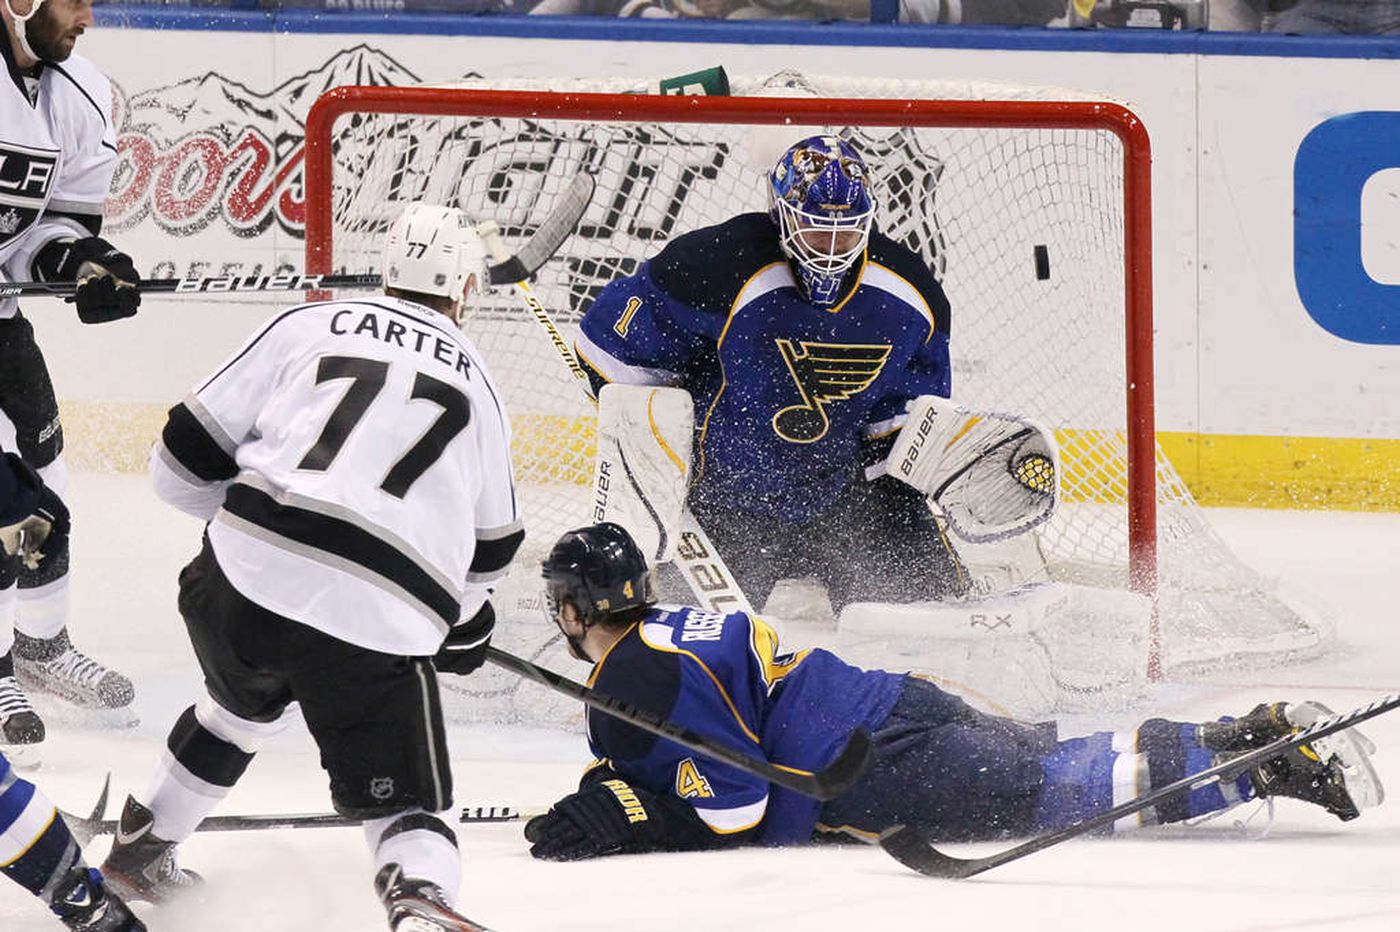 Carter: Kings' fight forged in stretch run